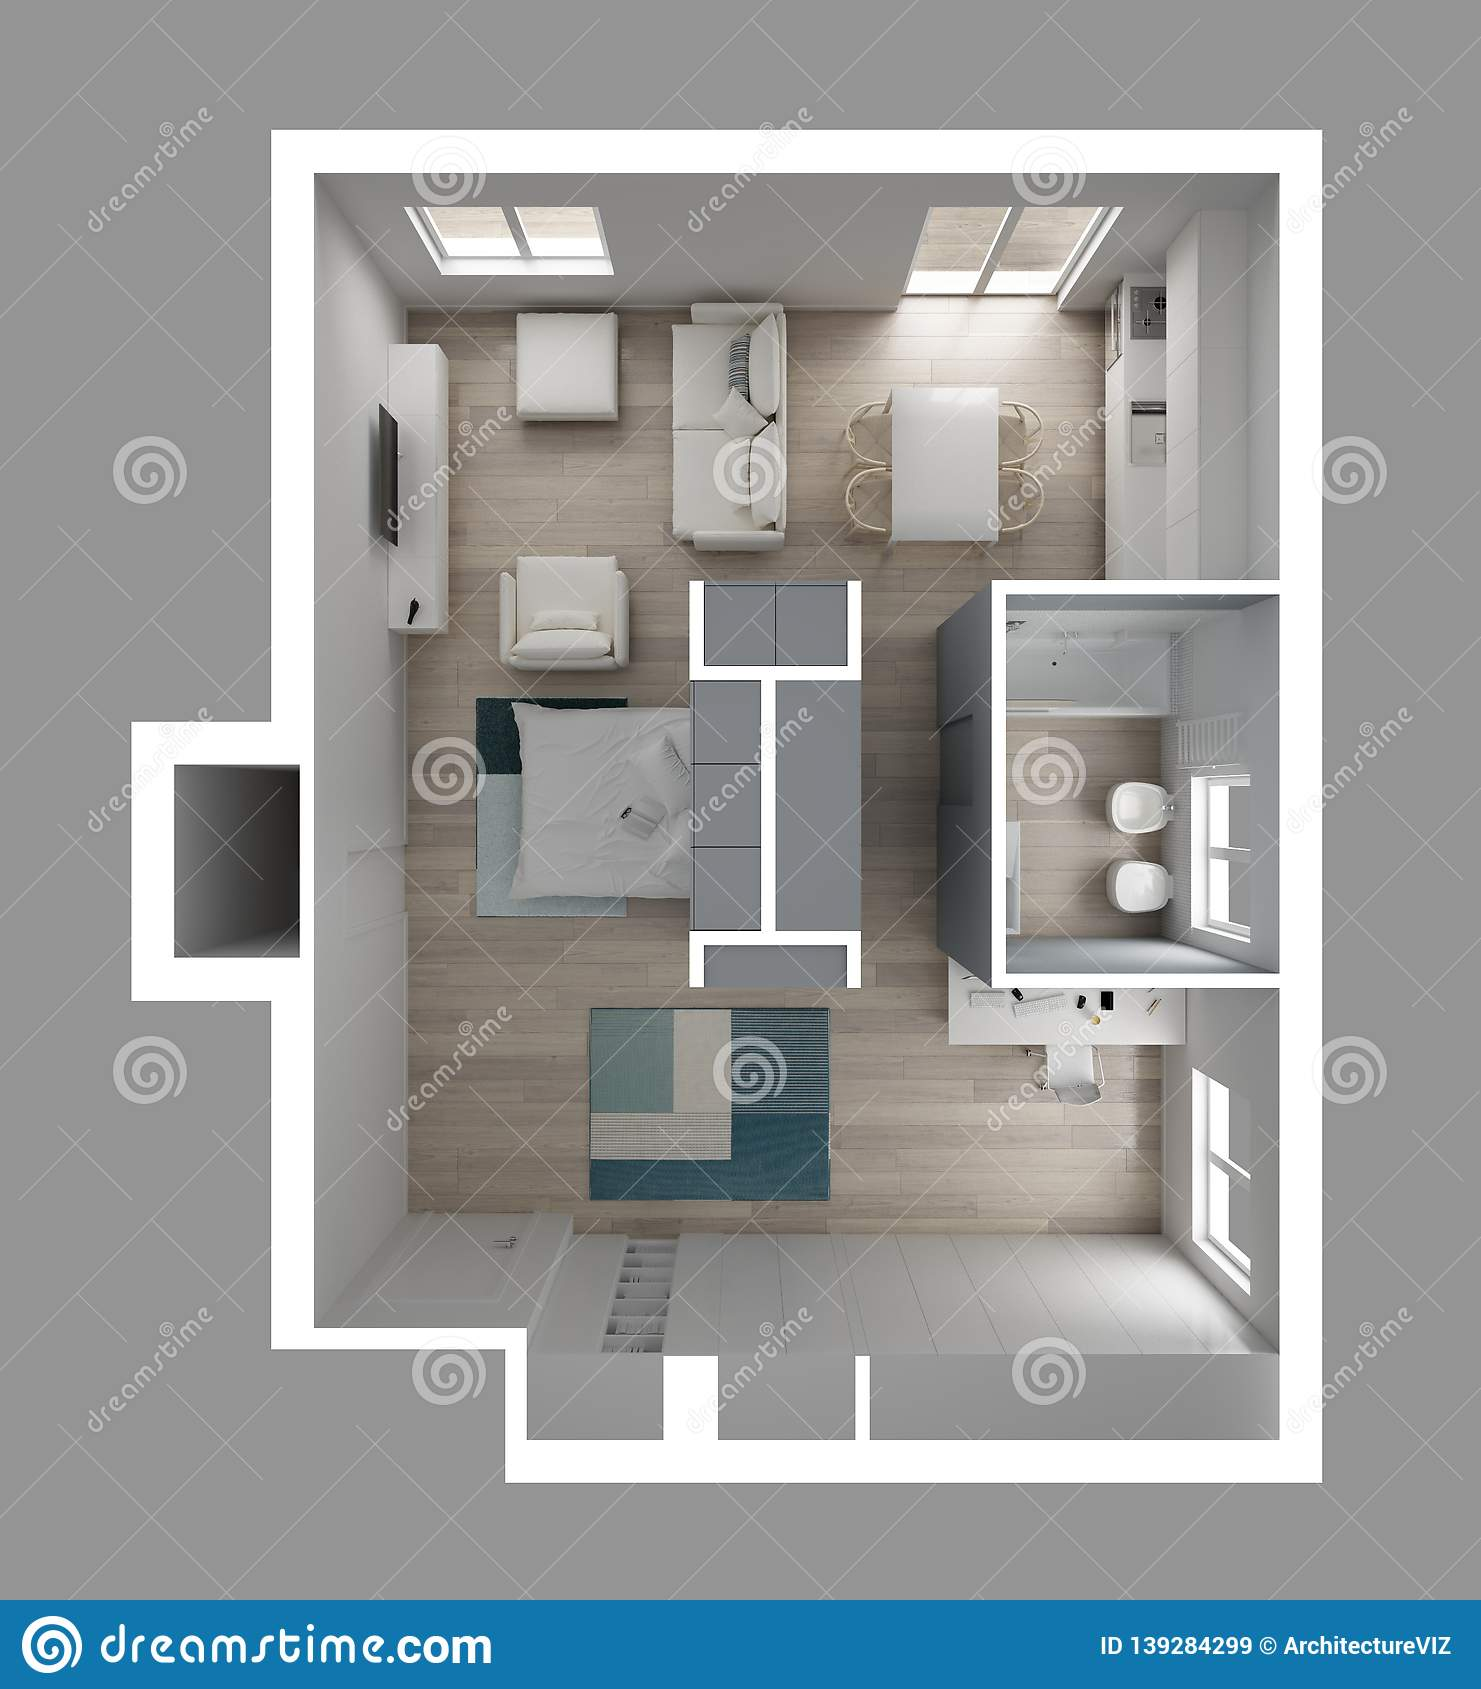 37 920 One Room Apartment Photos Free Royalty Free Stock Photos From Dreamstime